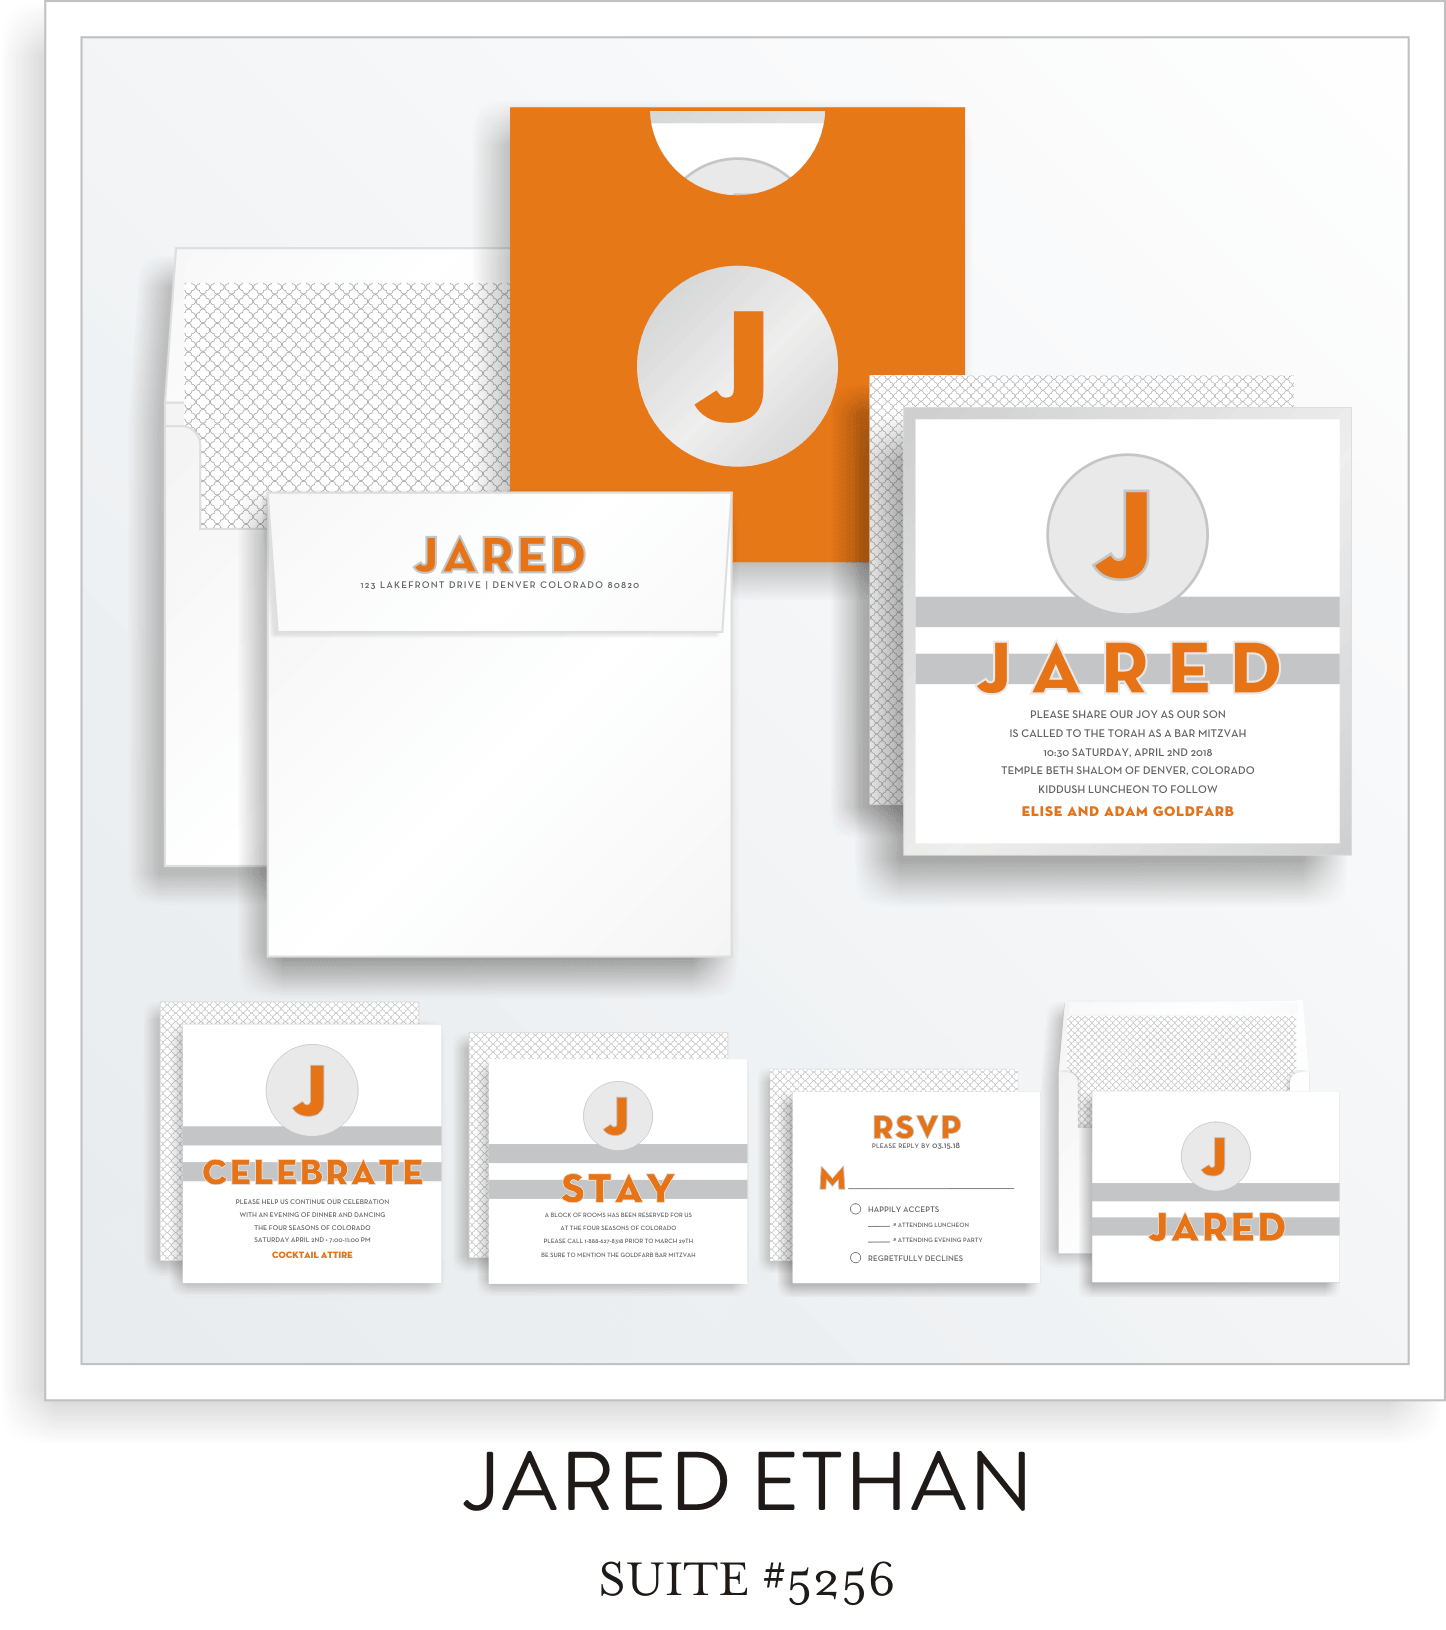 Copy of Copy of Bar Mitzvah Invitation Suite 5256 - Jared Ethan